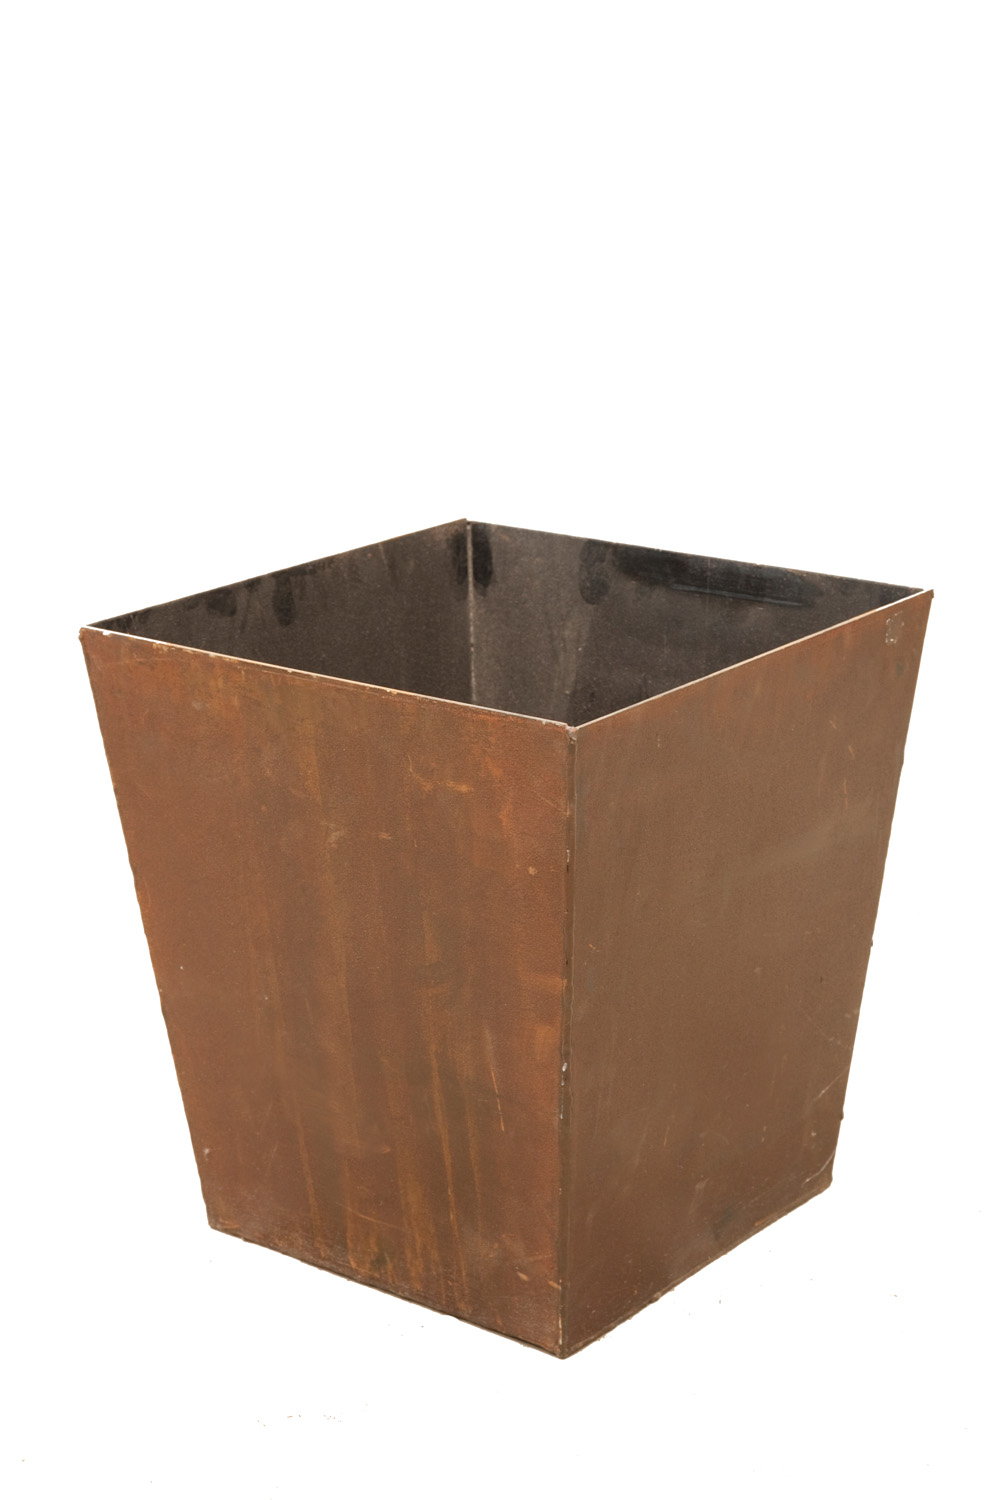 The Tapered planter (small and large sizes) from Entanglements www.entanglements.com.au